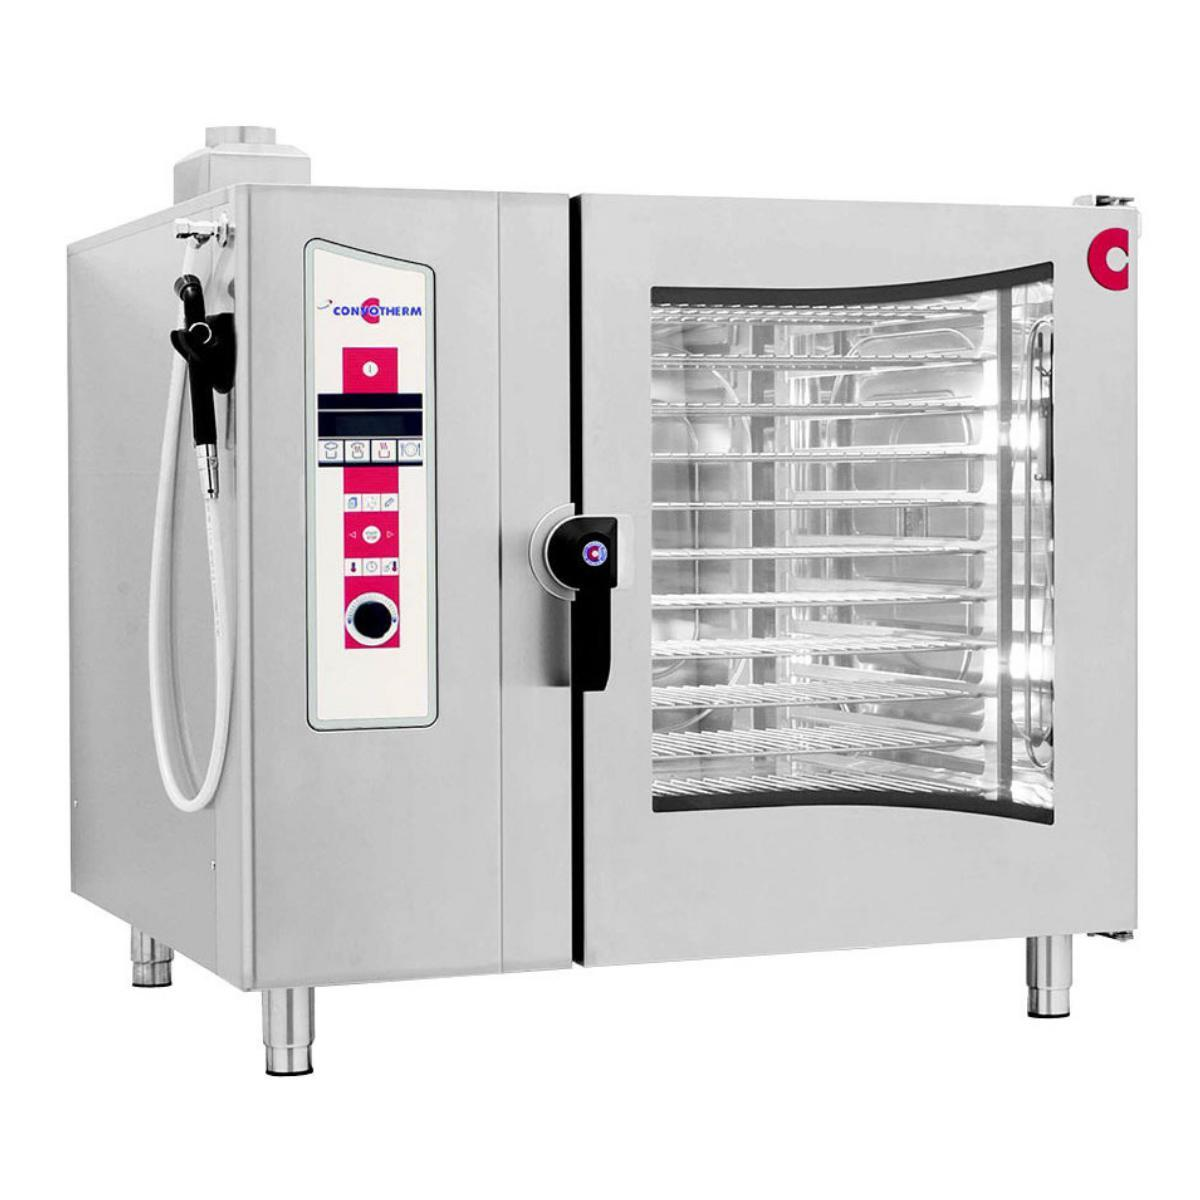 Cleveland Convotherm OES-10.20 Electric Combi Oven Steamer